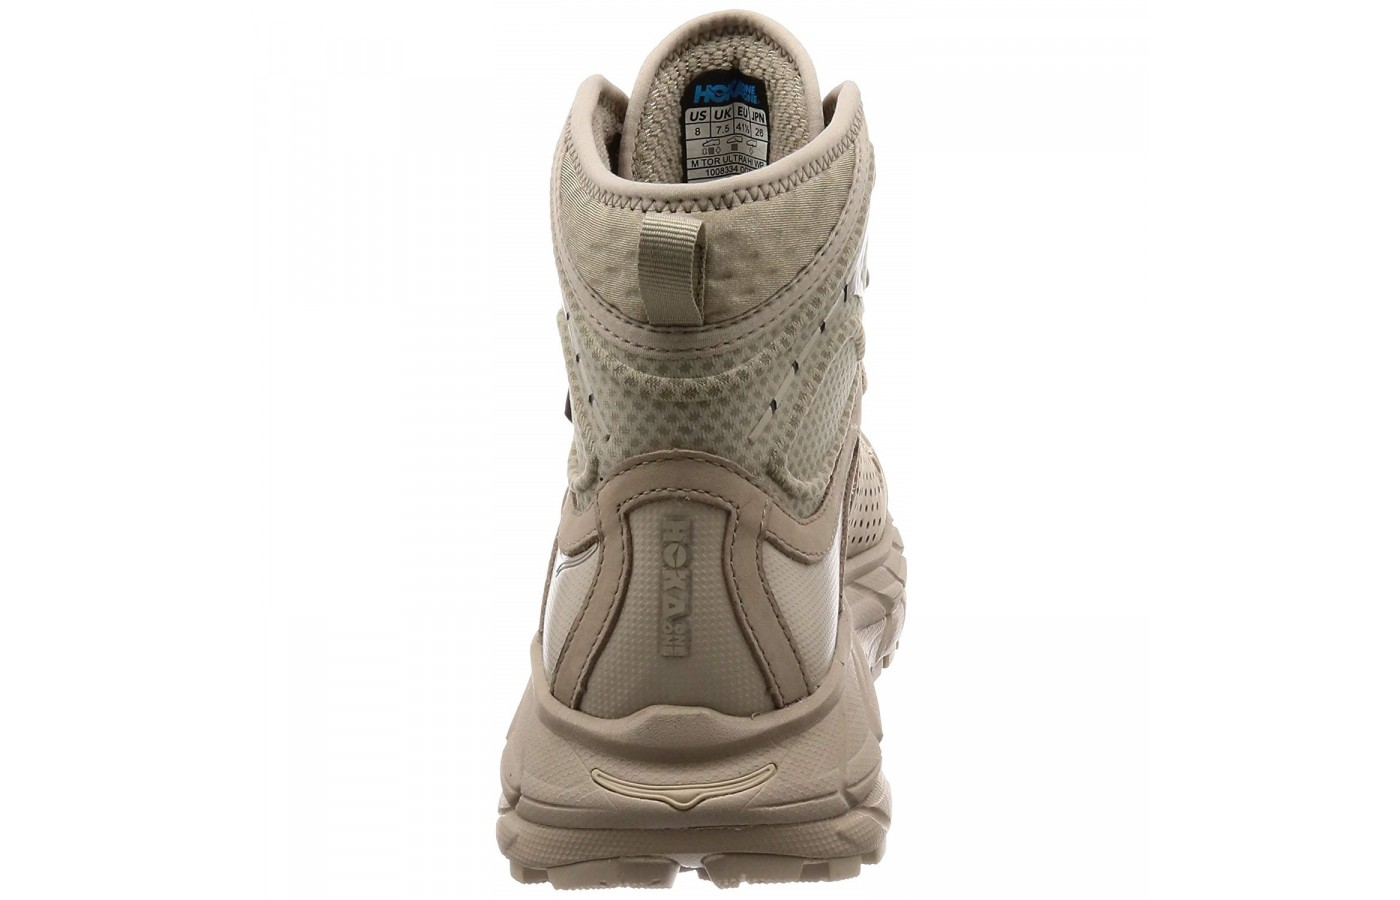 The Hoka One One Tor Ultra Hi WP offers extra thick, Vibram outsoles for protection from rocks along the way.